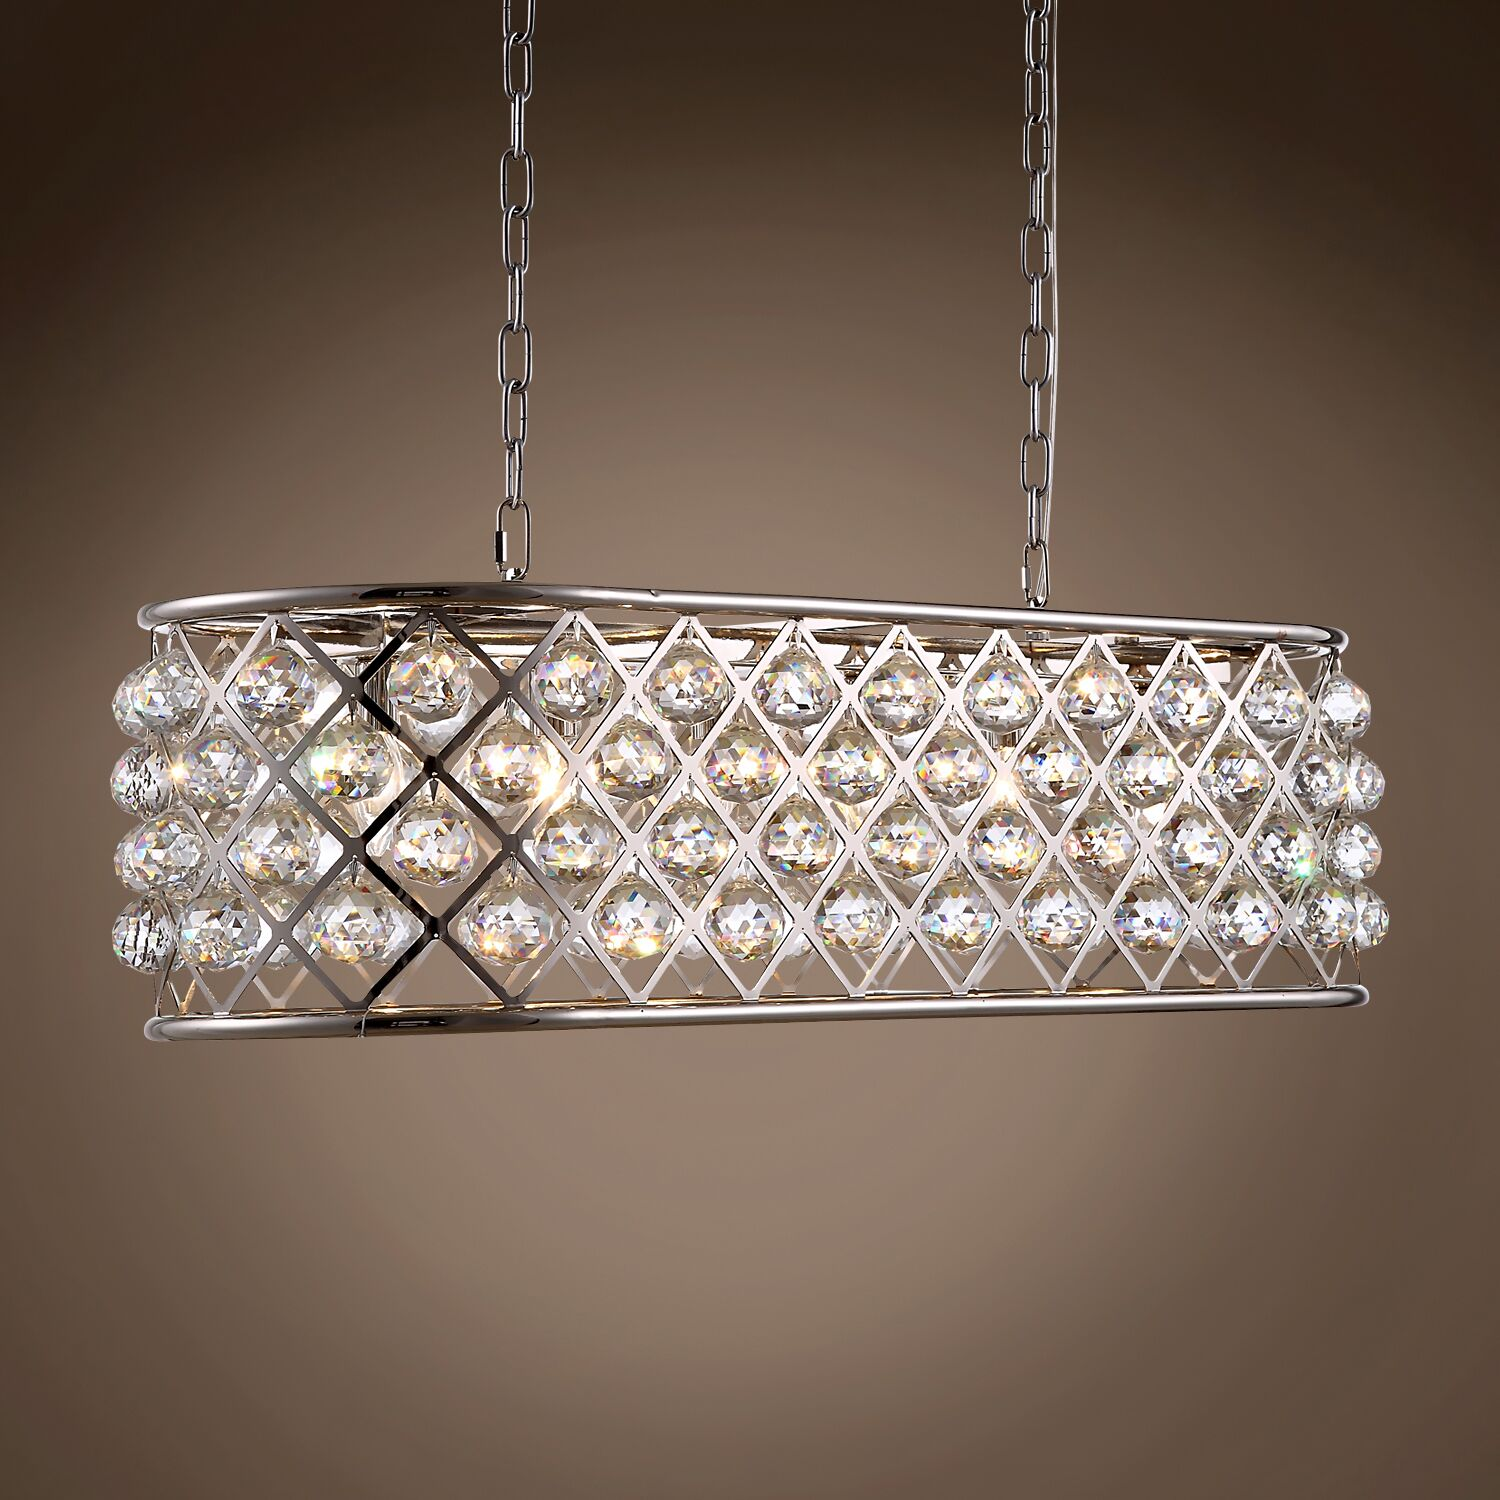 Lulsgate 6-Light Chandelier Shade Color: Clear, Bulb Type: Incandescent, Finish: Polished Nickel